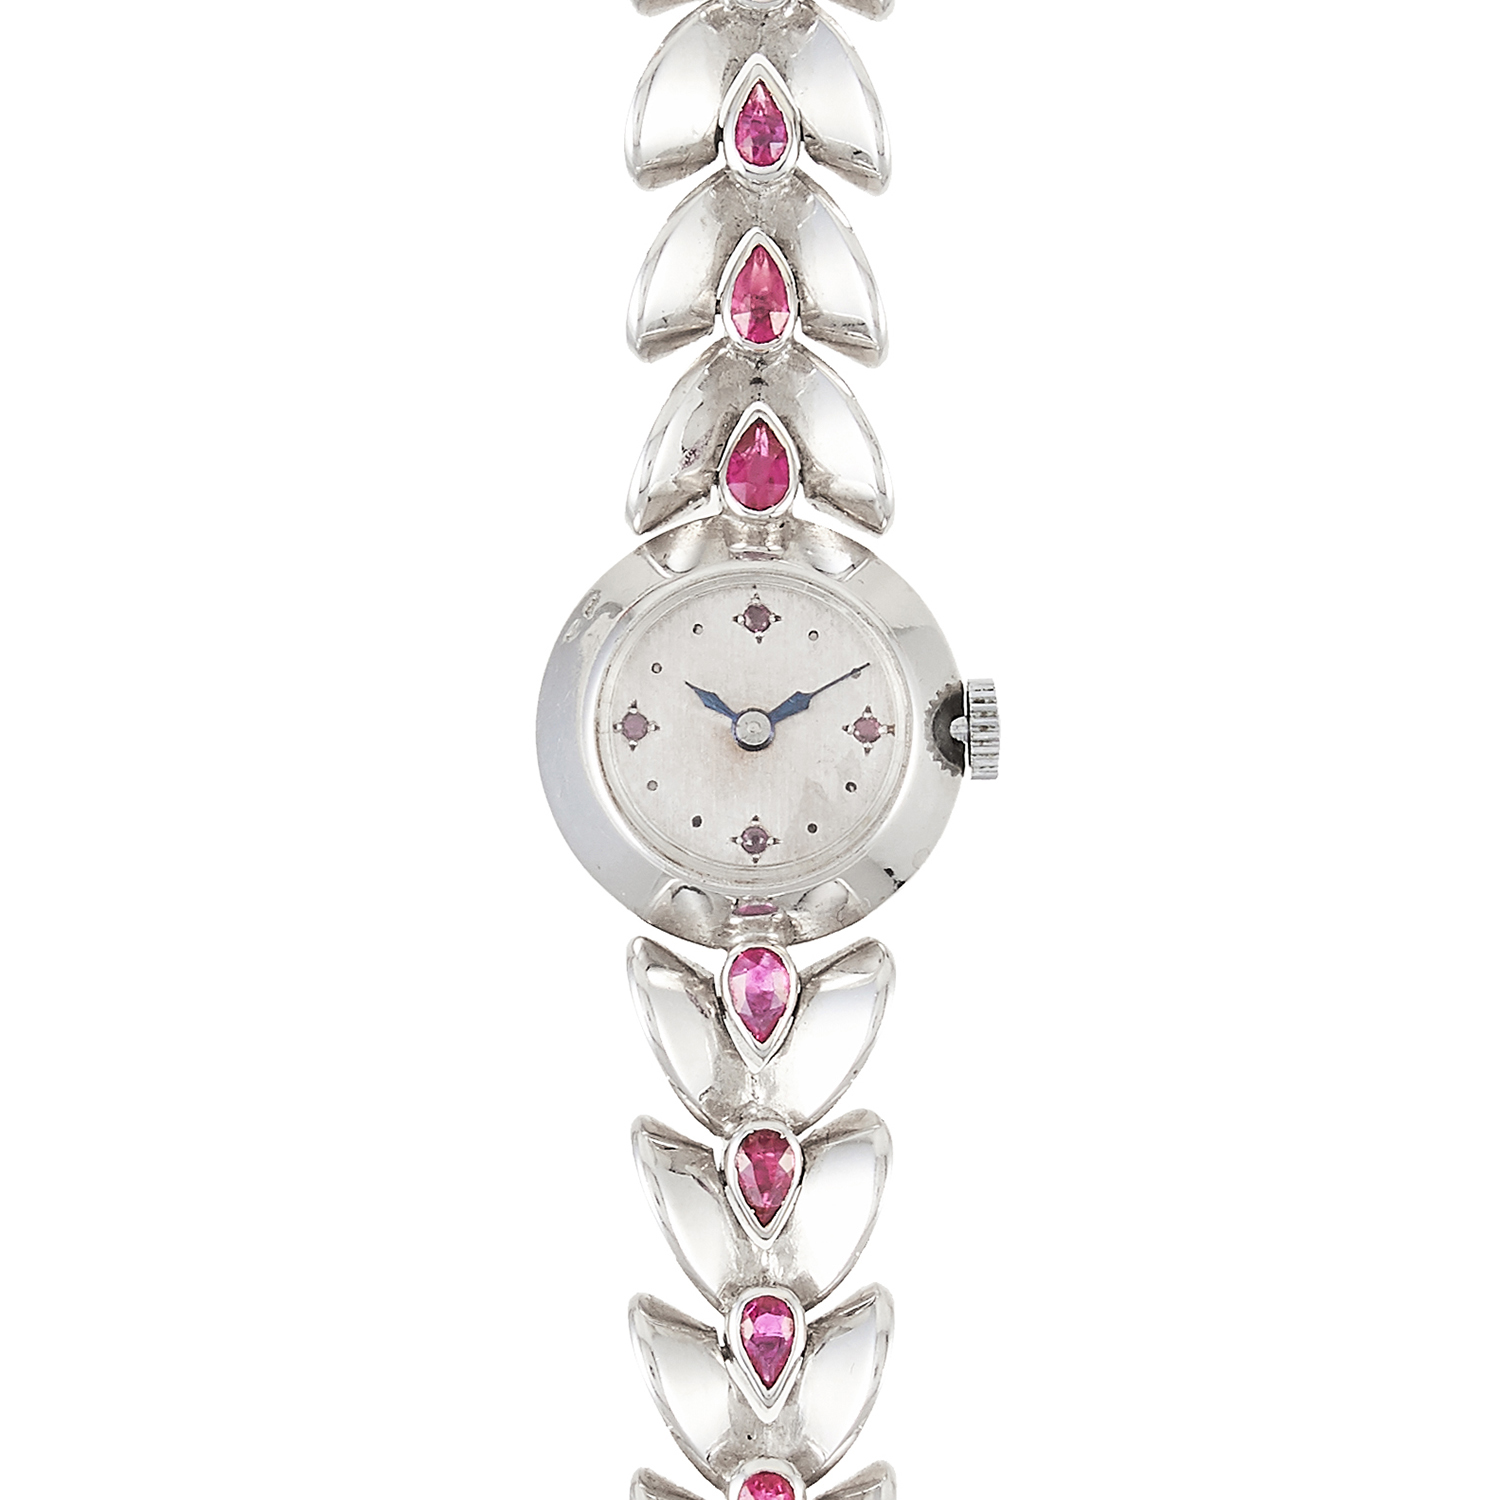 Los 343 - A RUBY LADIES WRISTWATCH, FRENCH in white gold, the fancy link chain is set with pear cut rubies and